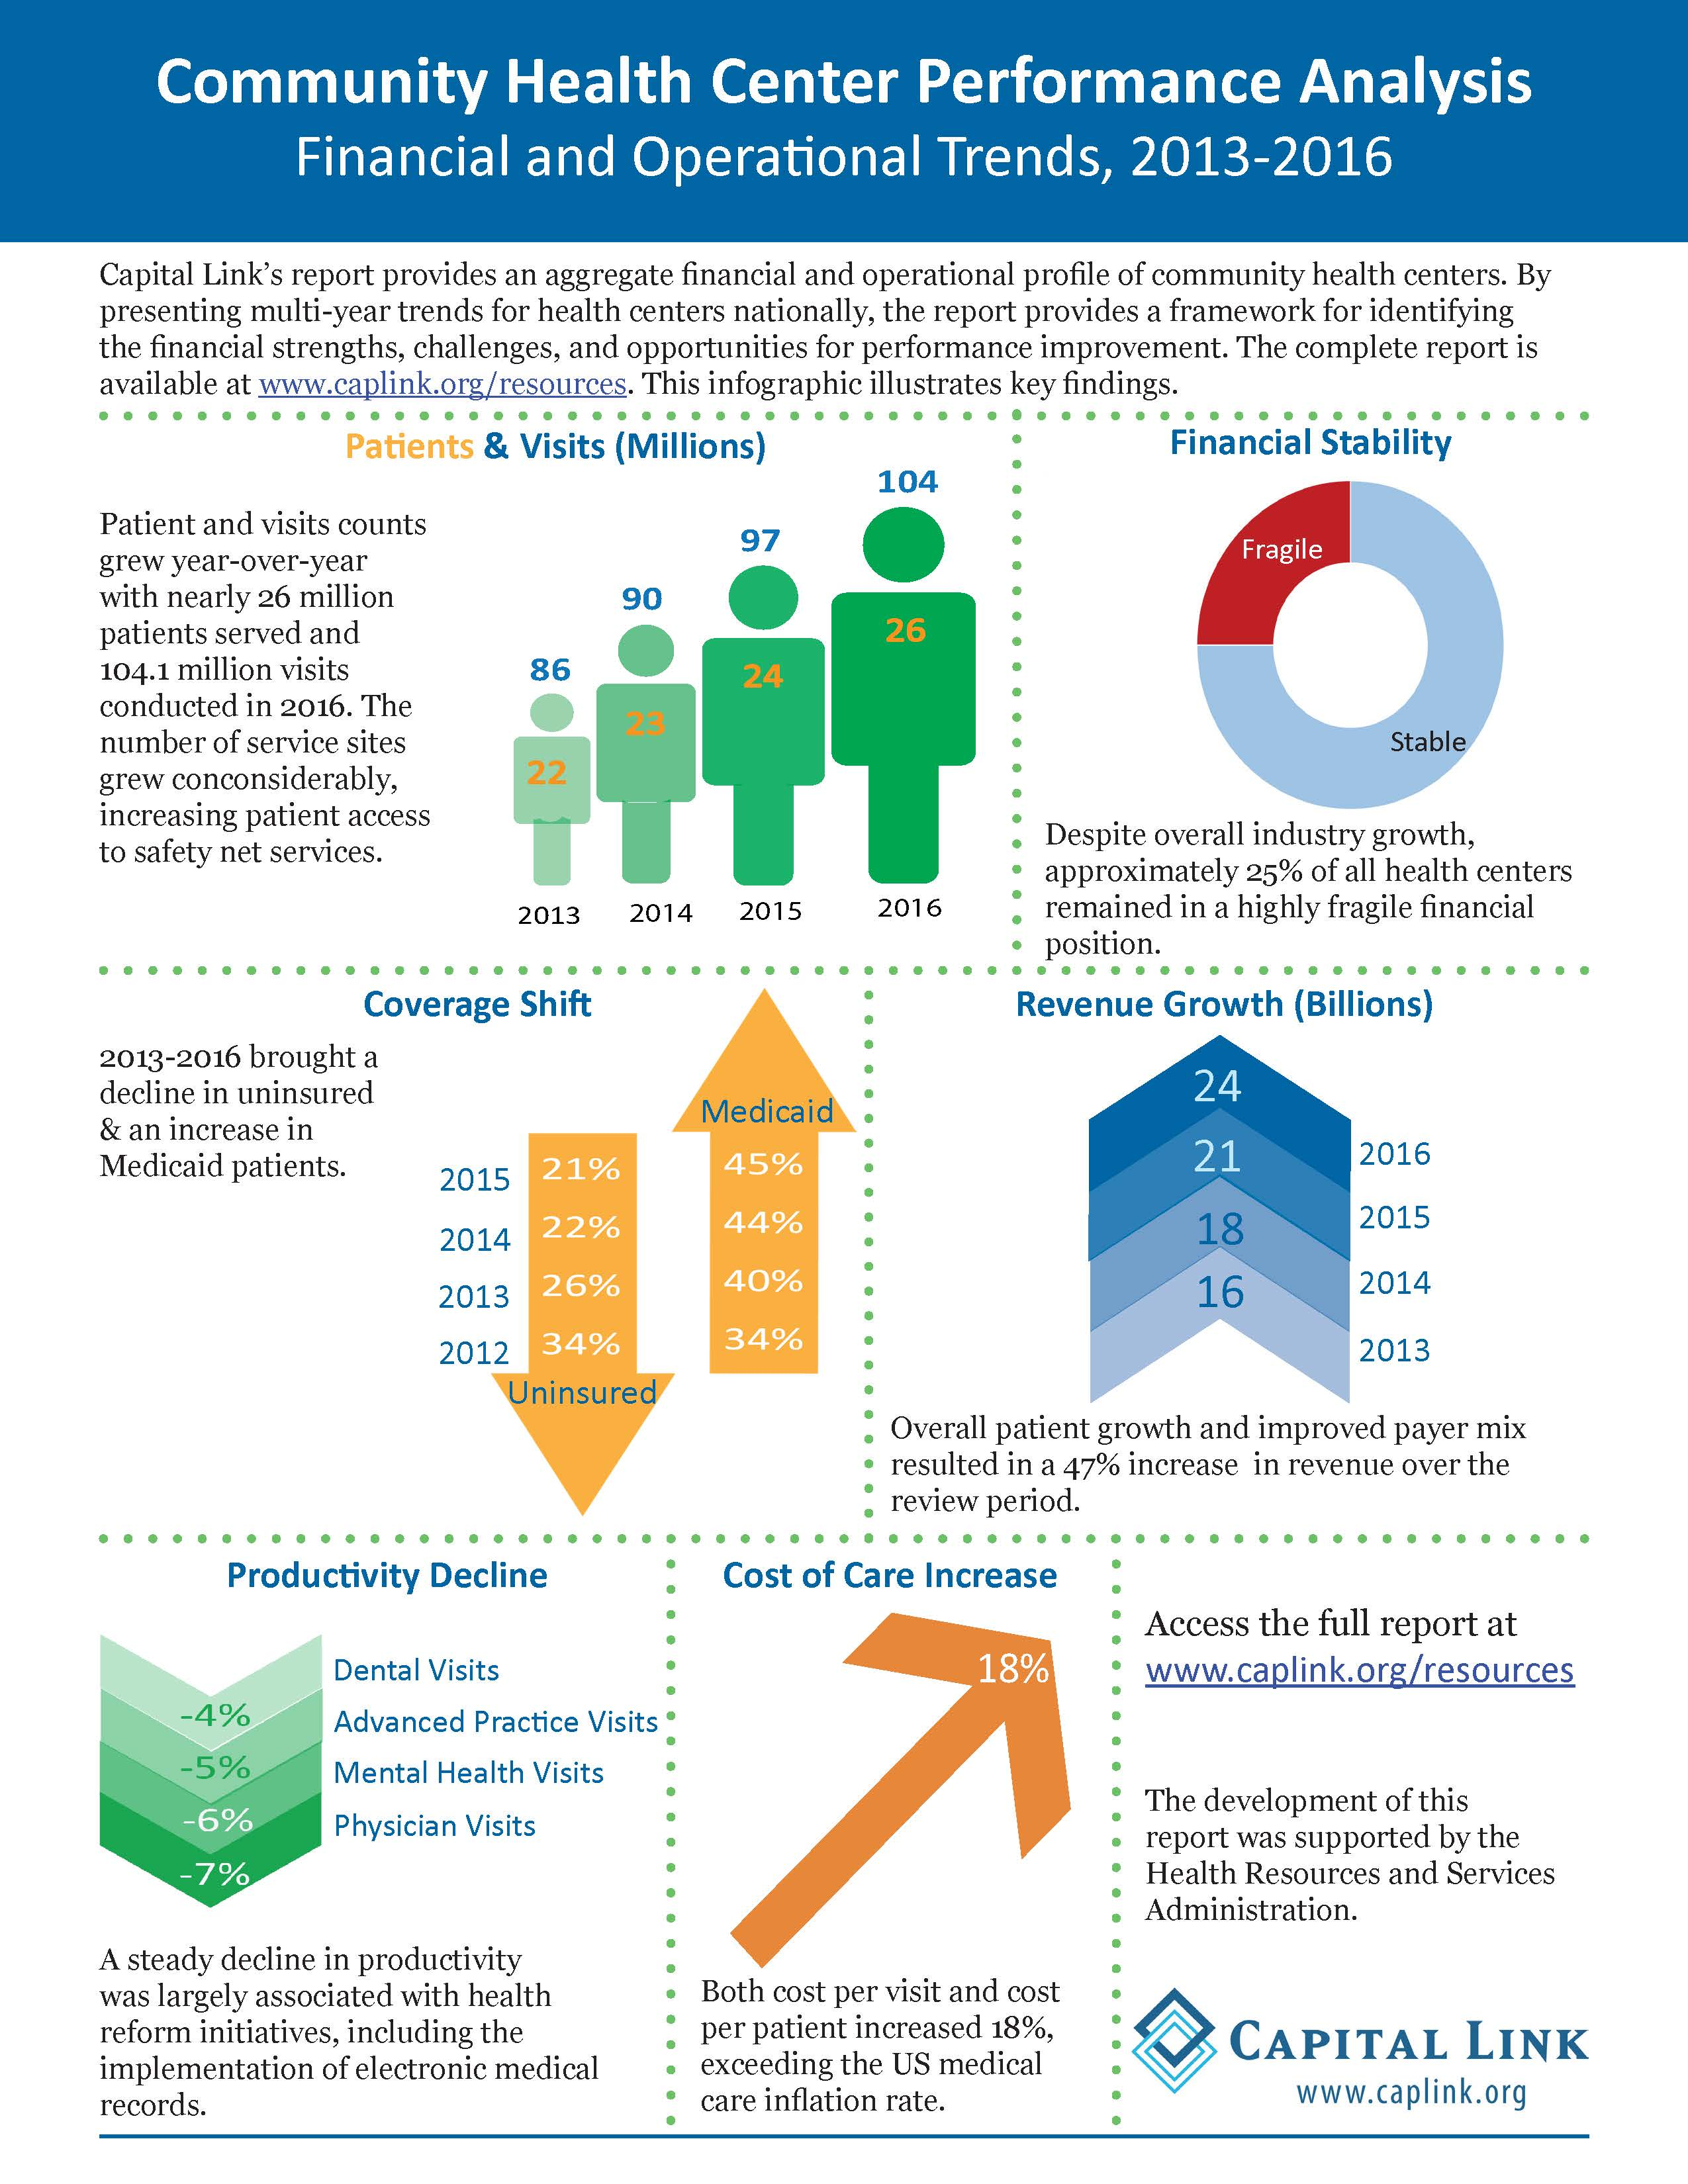 National Financial and Operational Trends 2013 2016 Infographic